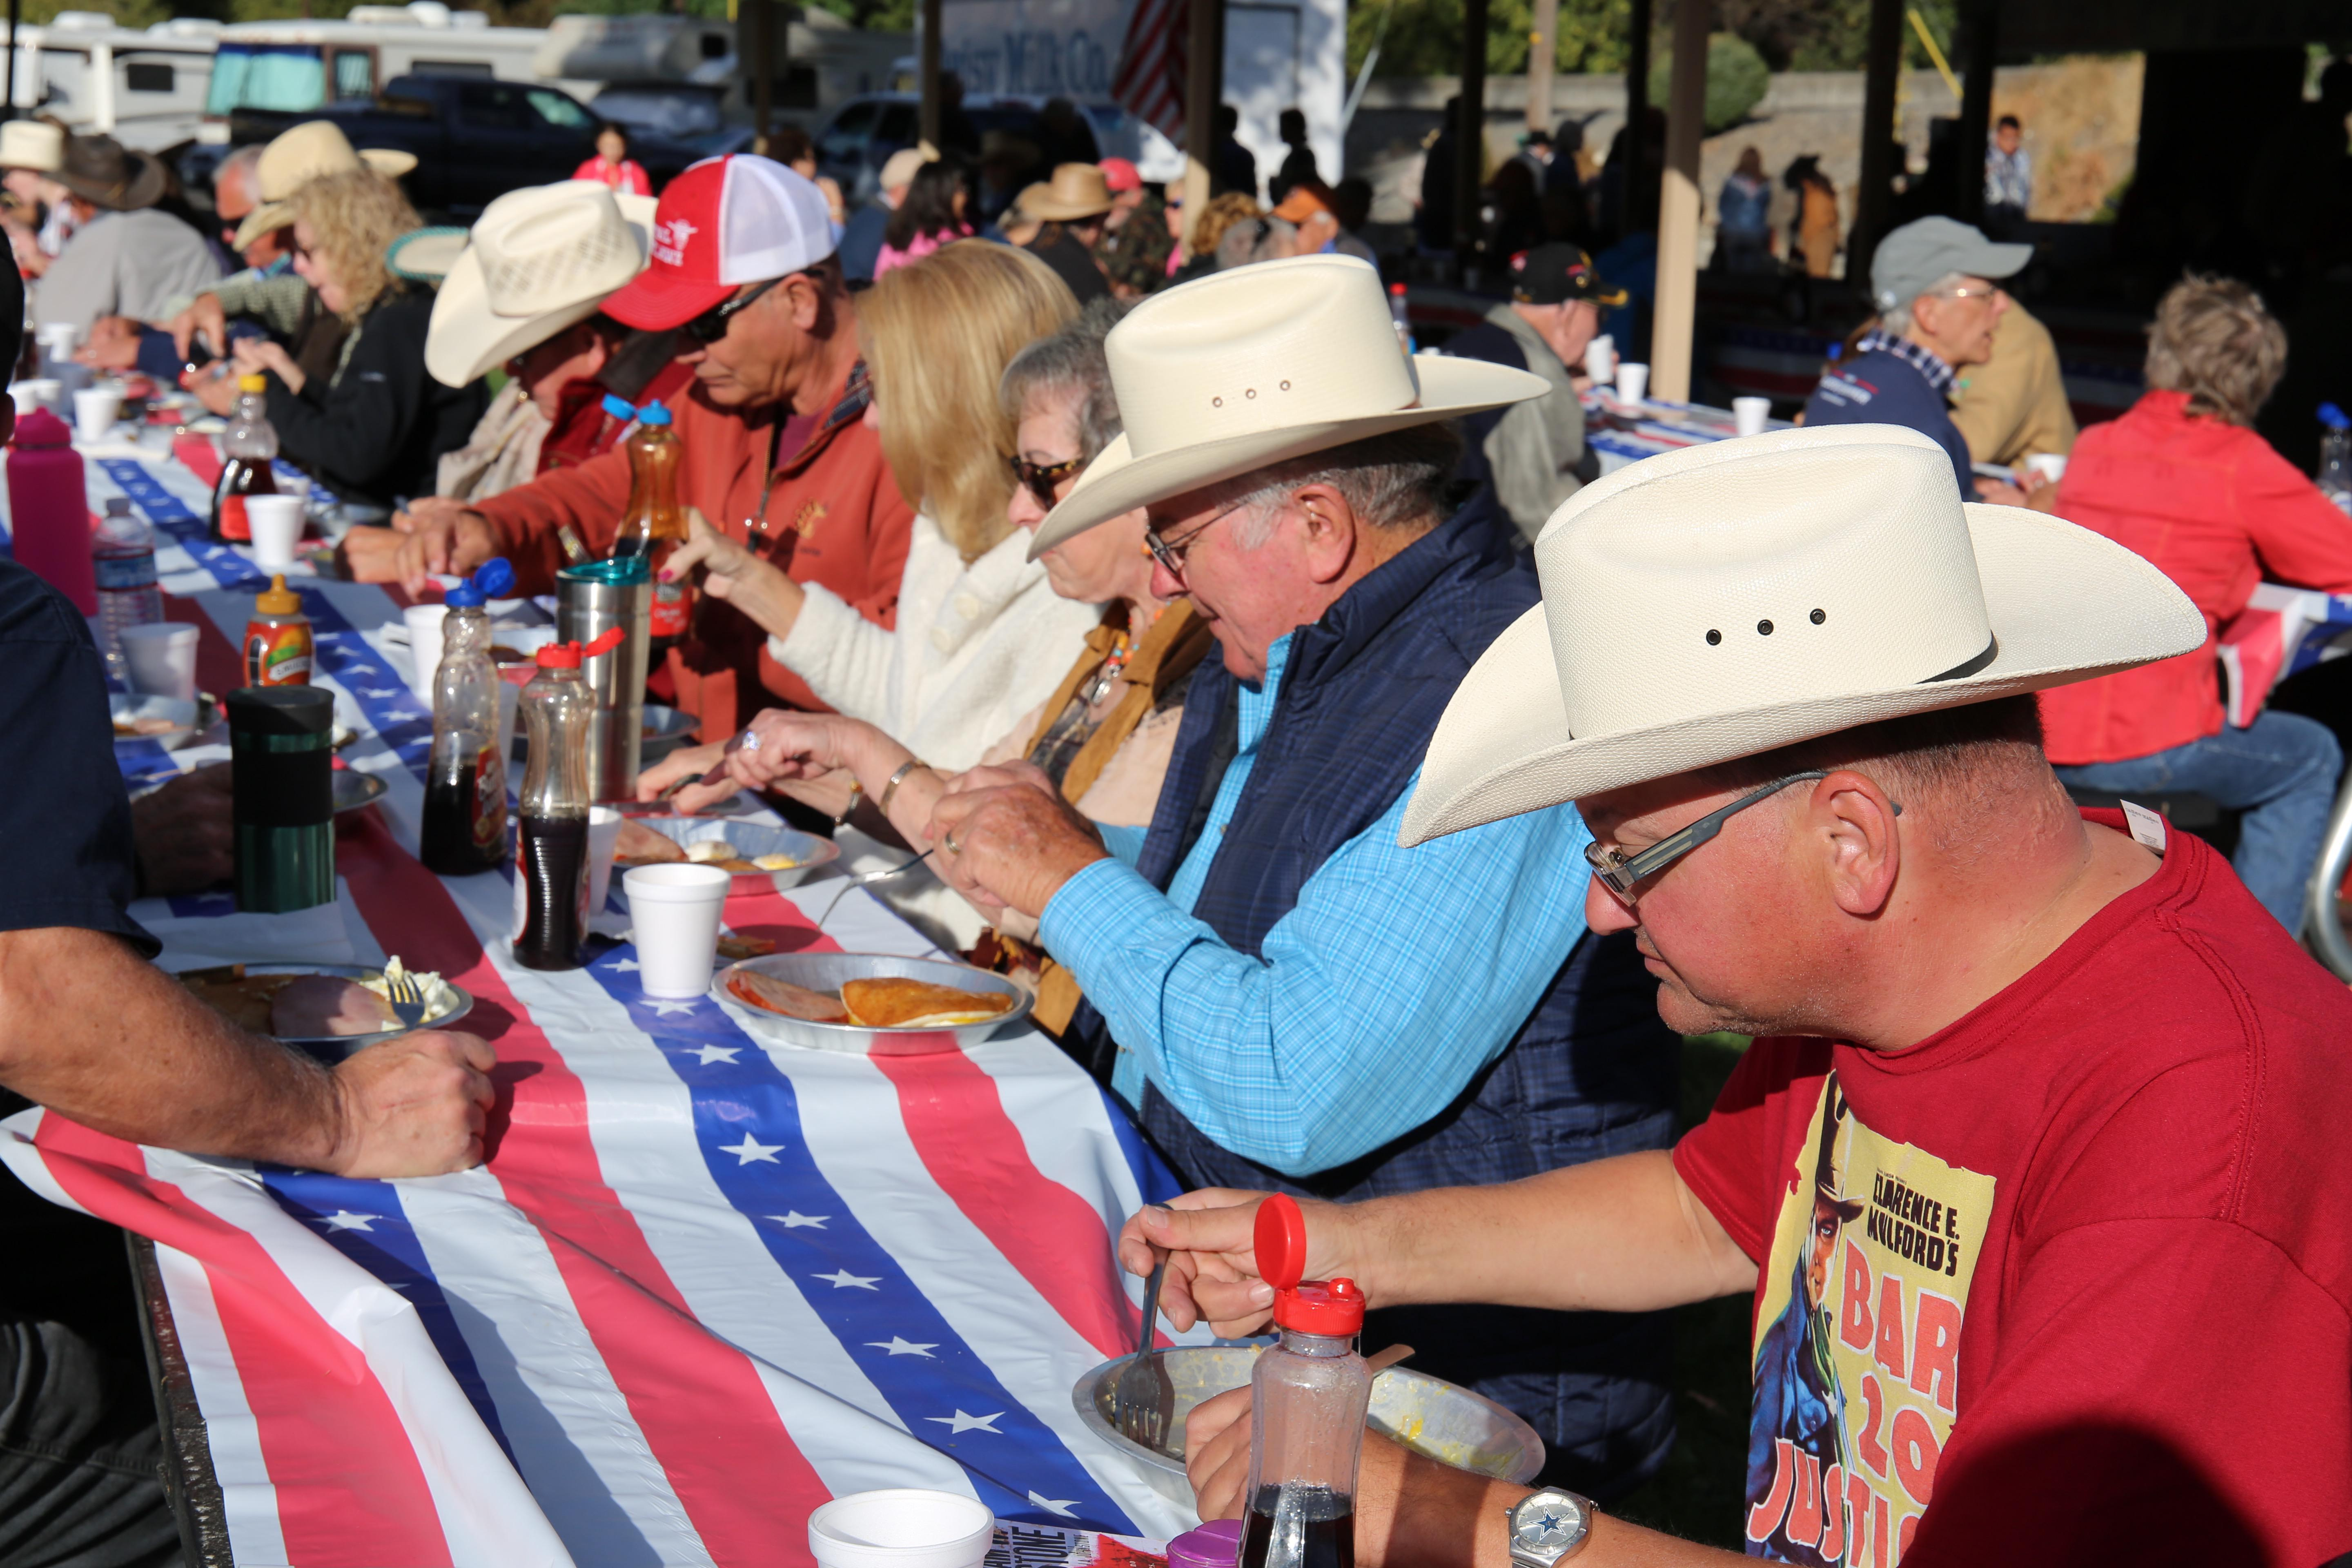 At the Pendleton VFW's annual Cowboy Breakfast about 50 volunteers serve thousands of breakfasts during the Pendleton Roundup.